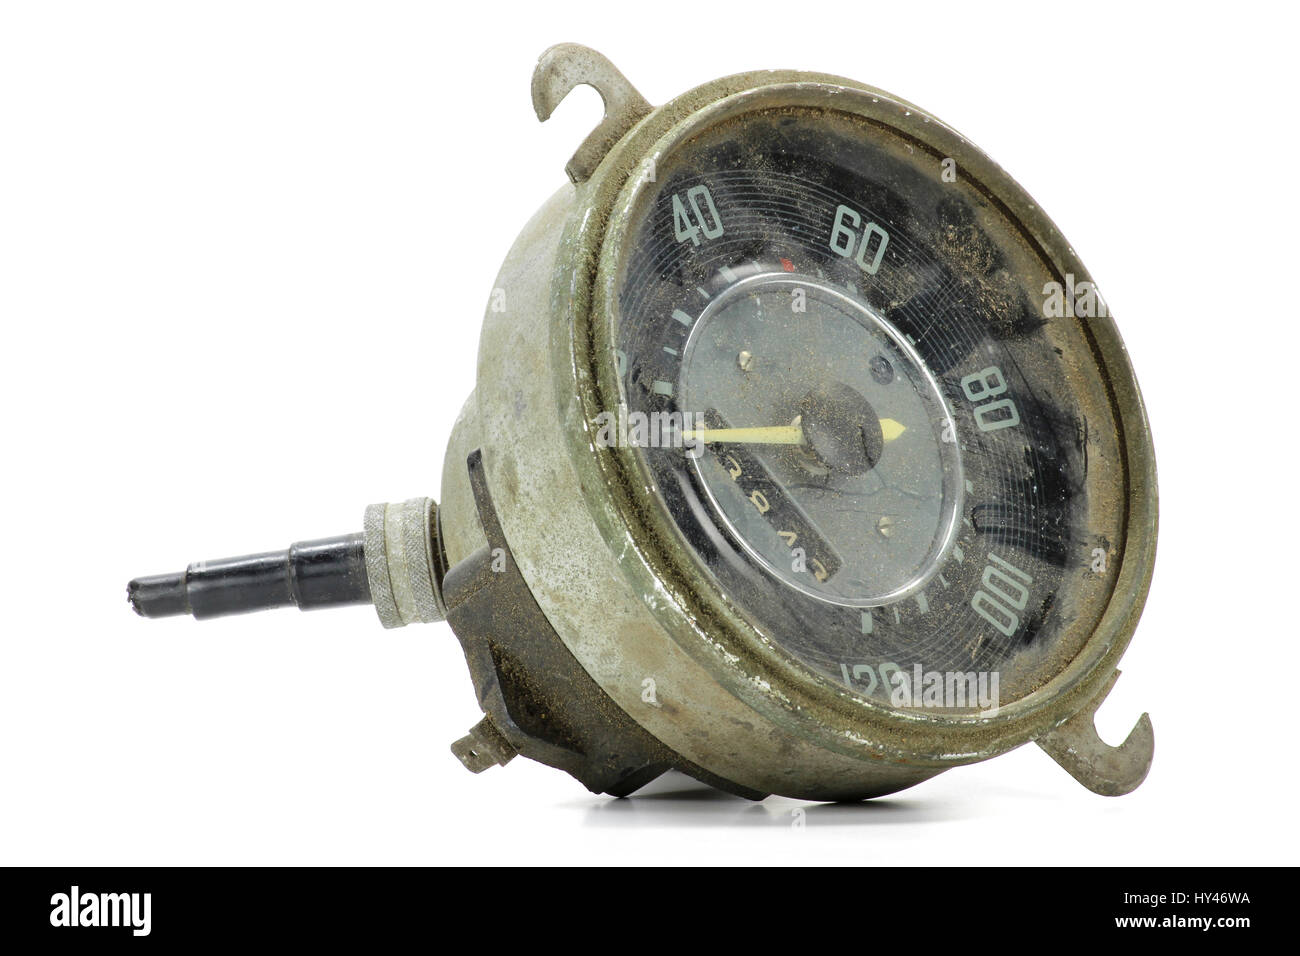 spare part speedometer for classic car - Stock Image